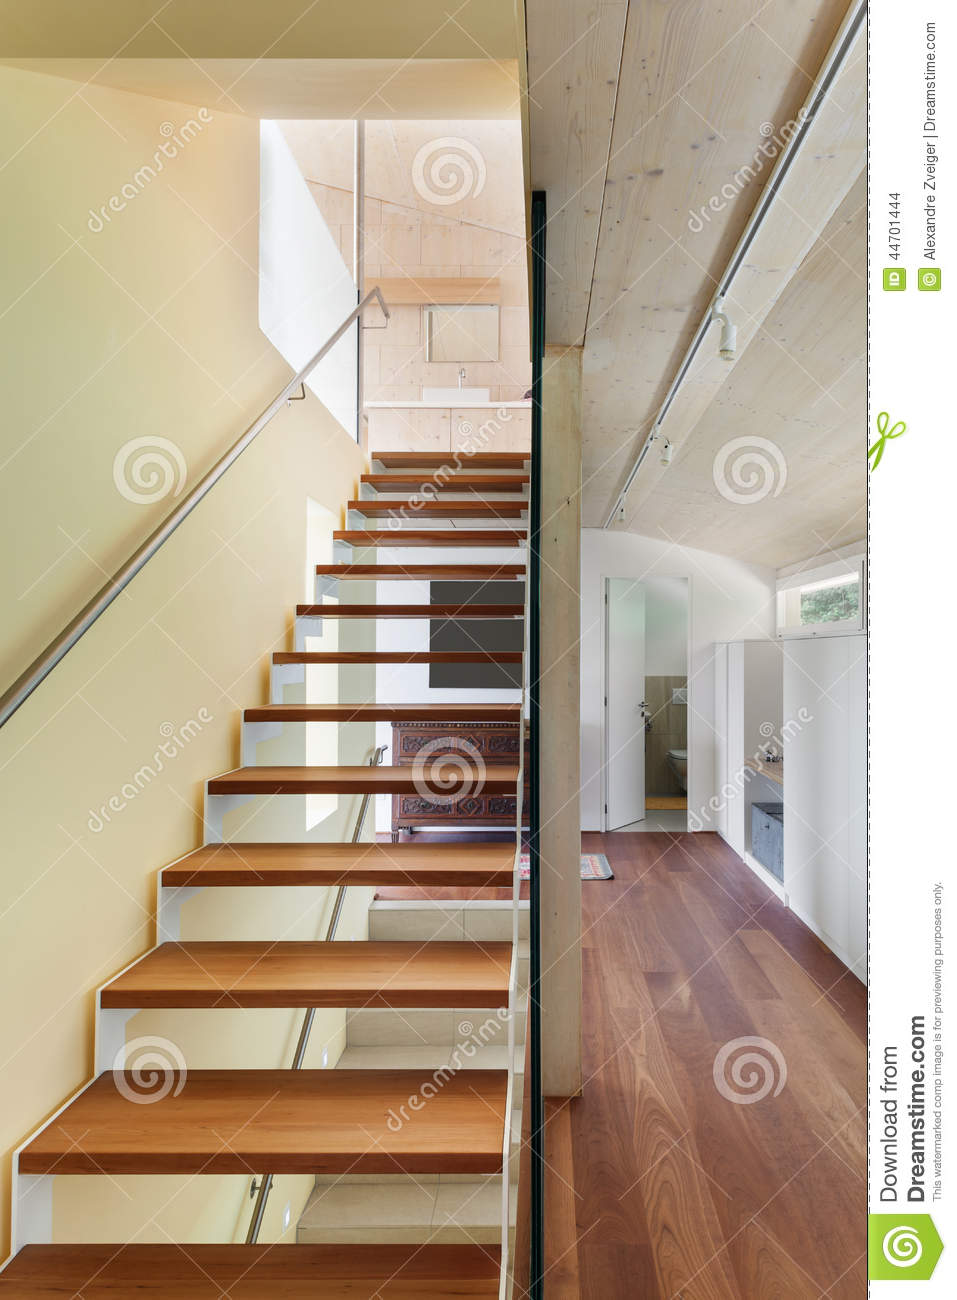 Architecture moderne int rieur escalier photo stock for Escalier interieur moderne